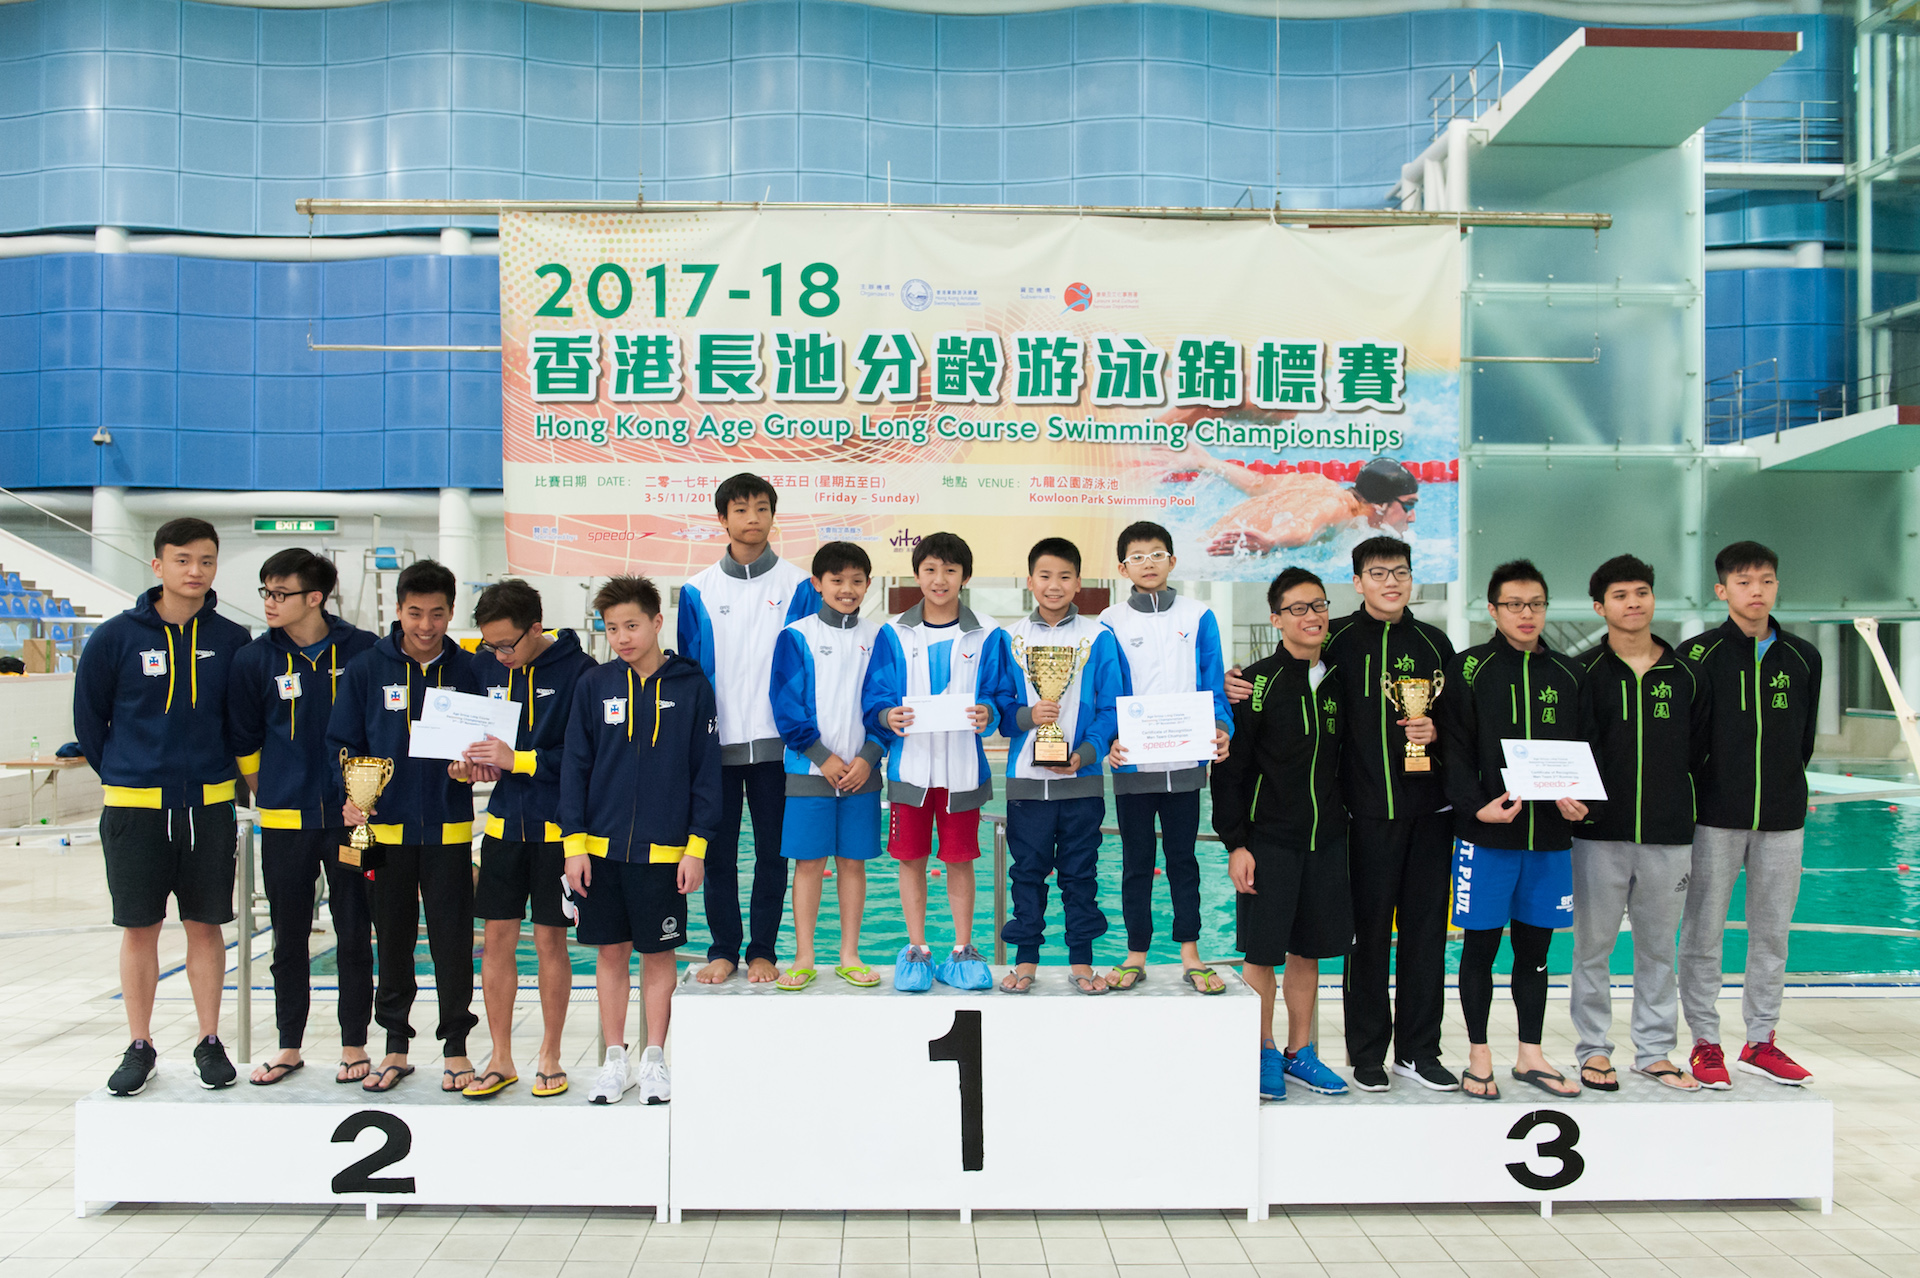 Win Tin Swimming Club - 2017 Long Course Age Group Championships 7